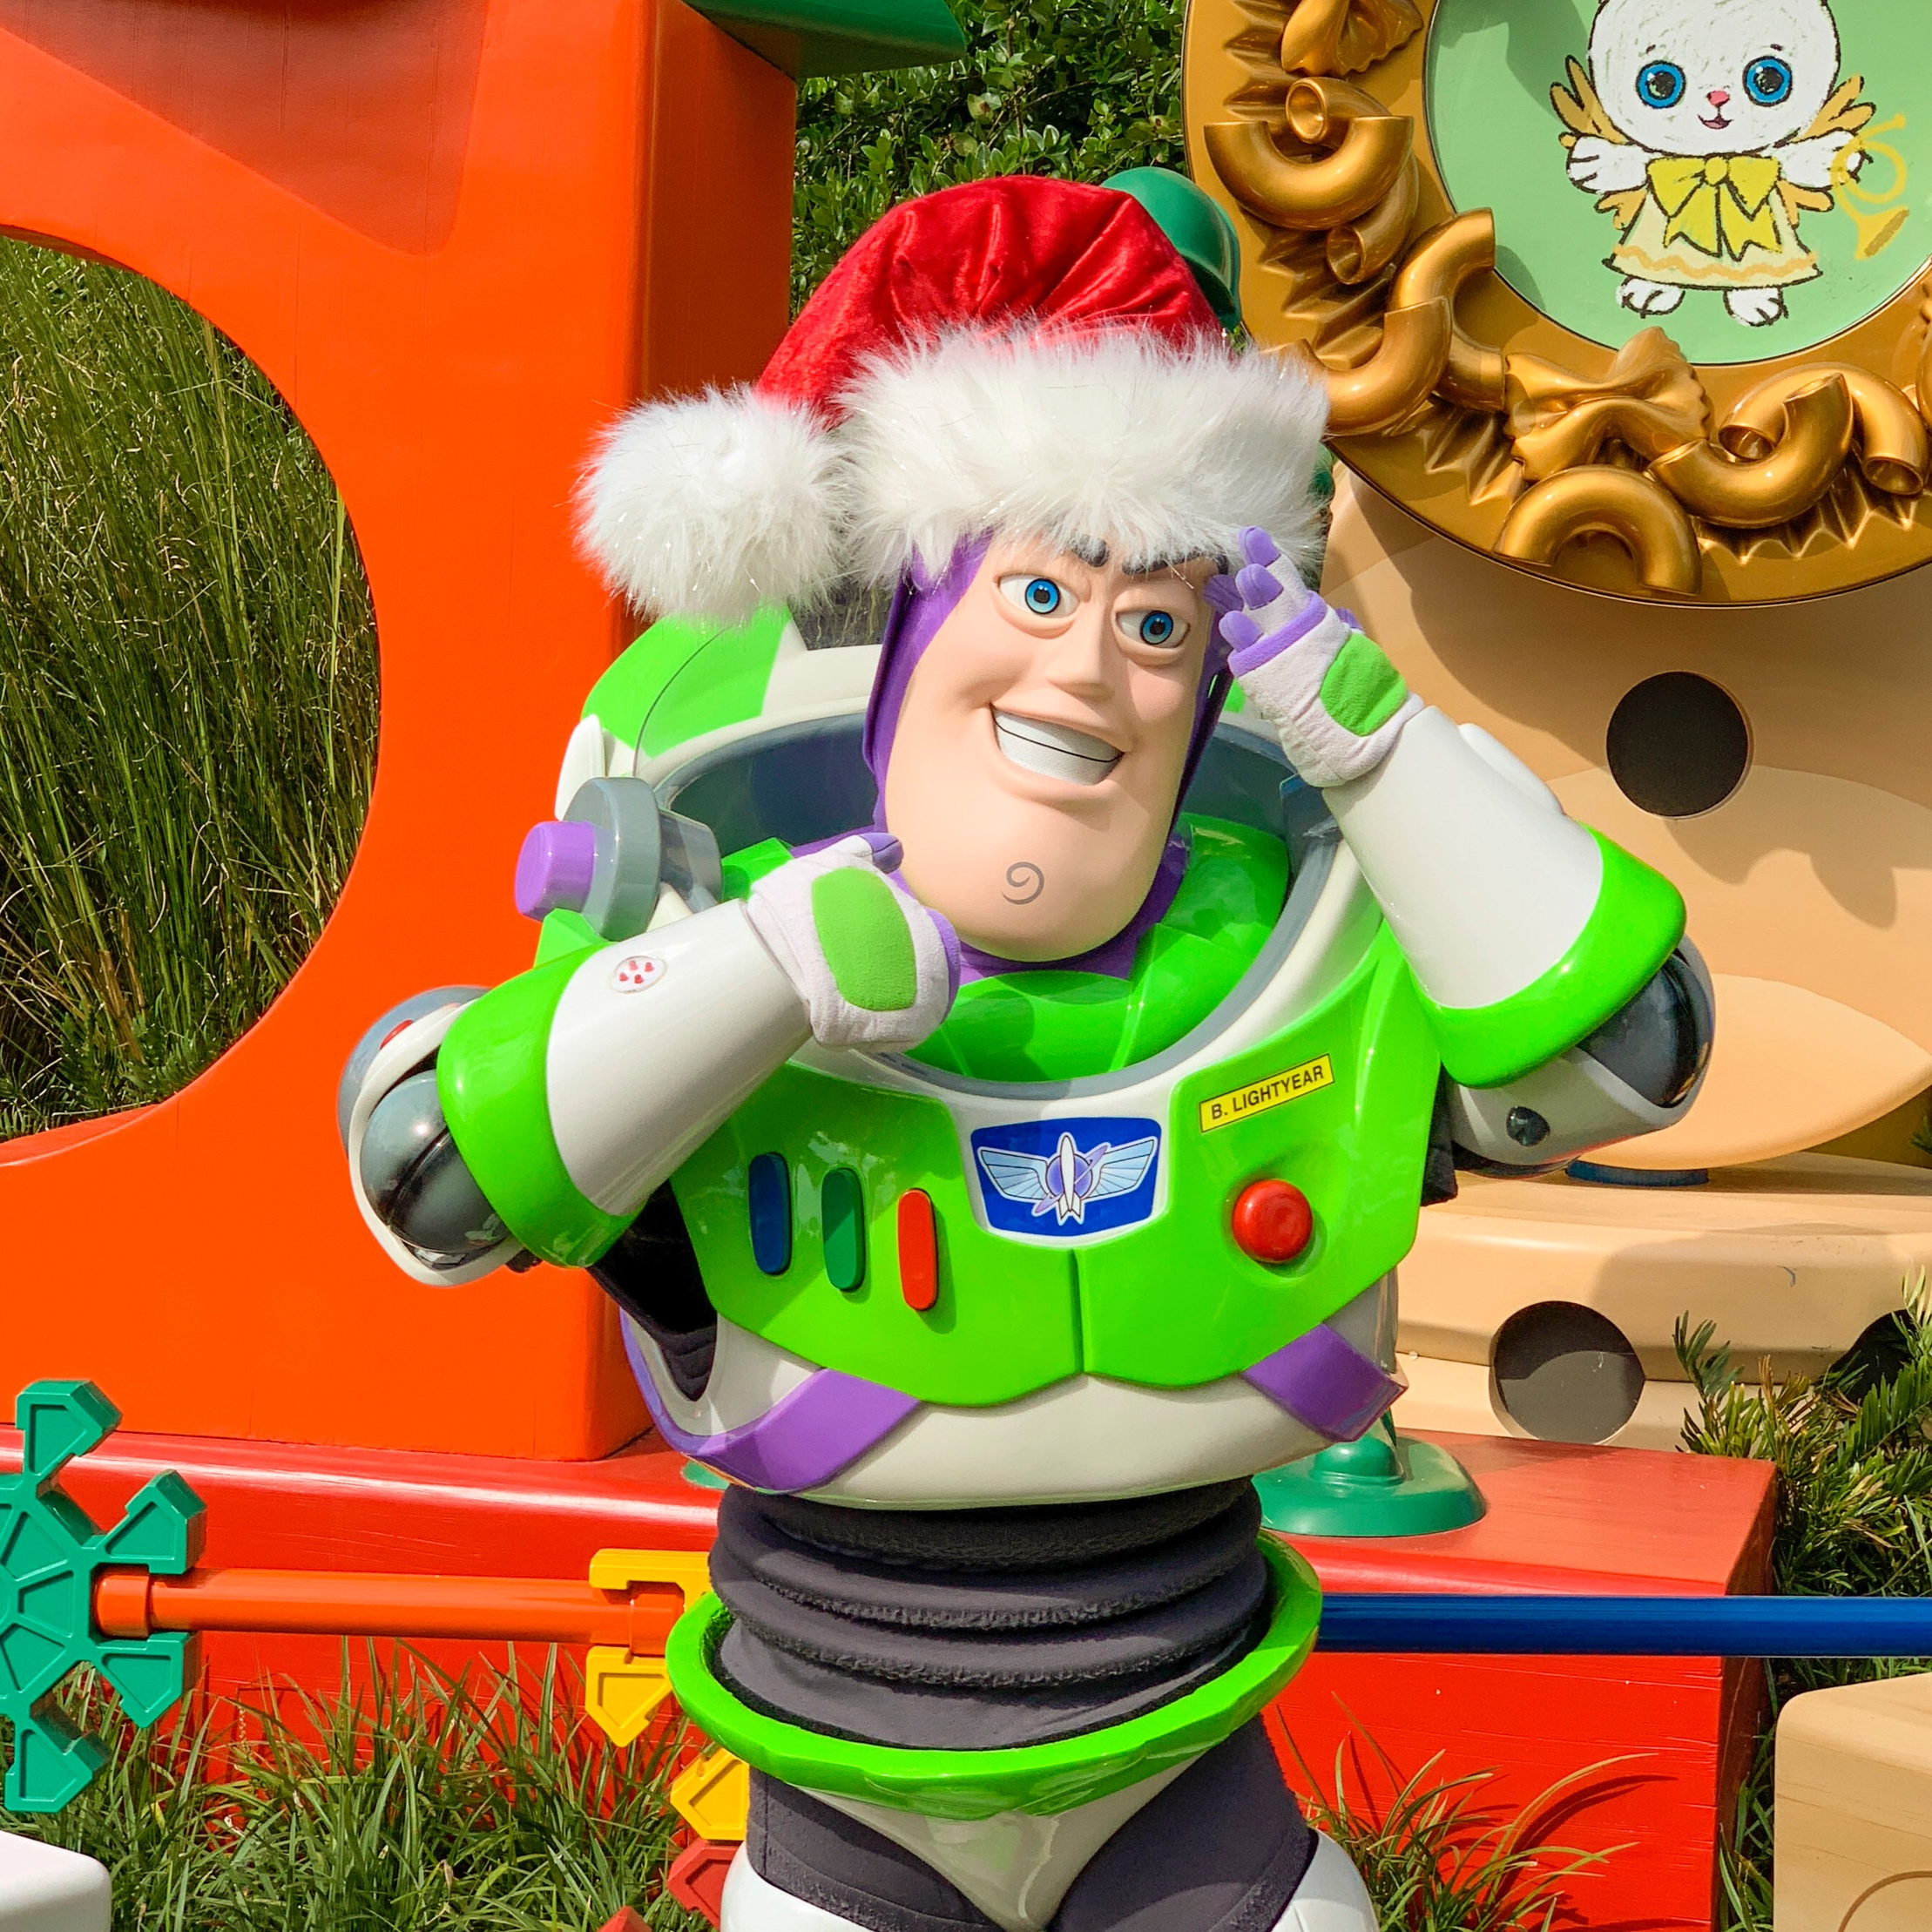 Buzz ready for the holidays.